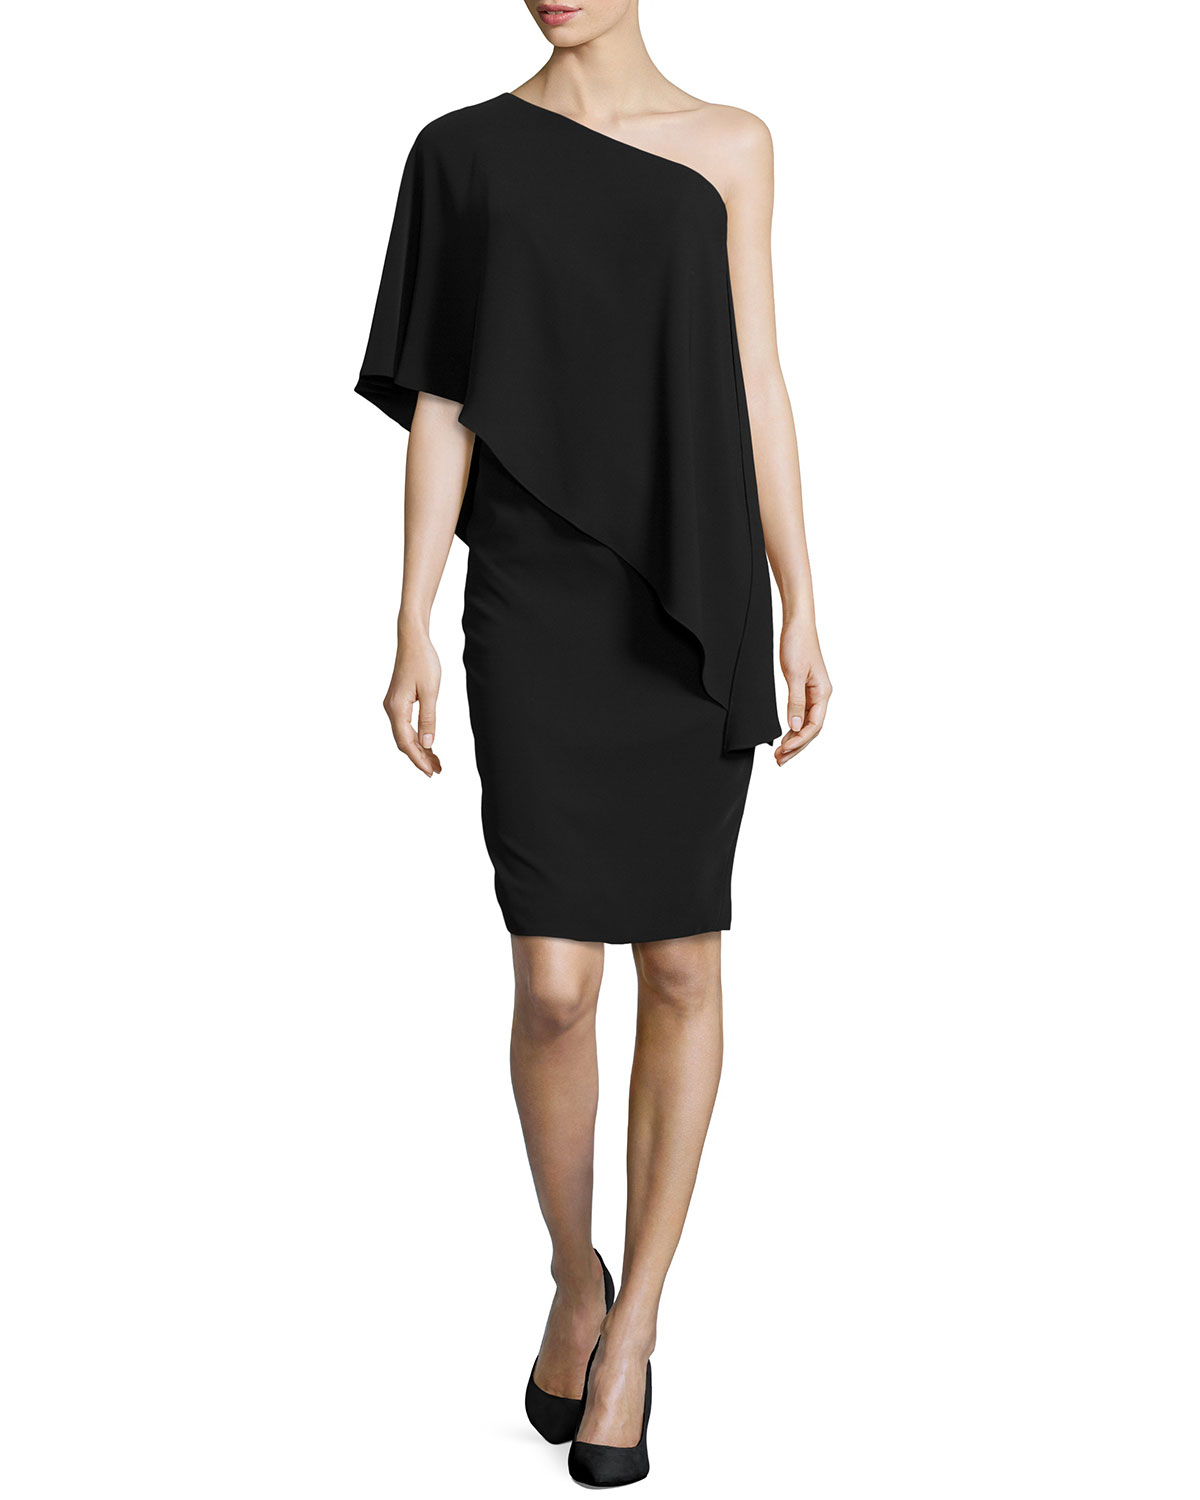 One-Shoulder Cape Cocktail Dress, Black